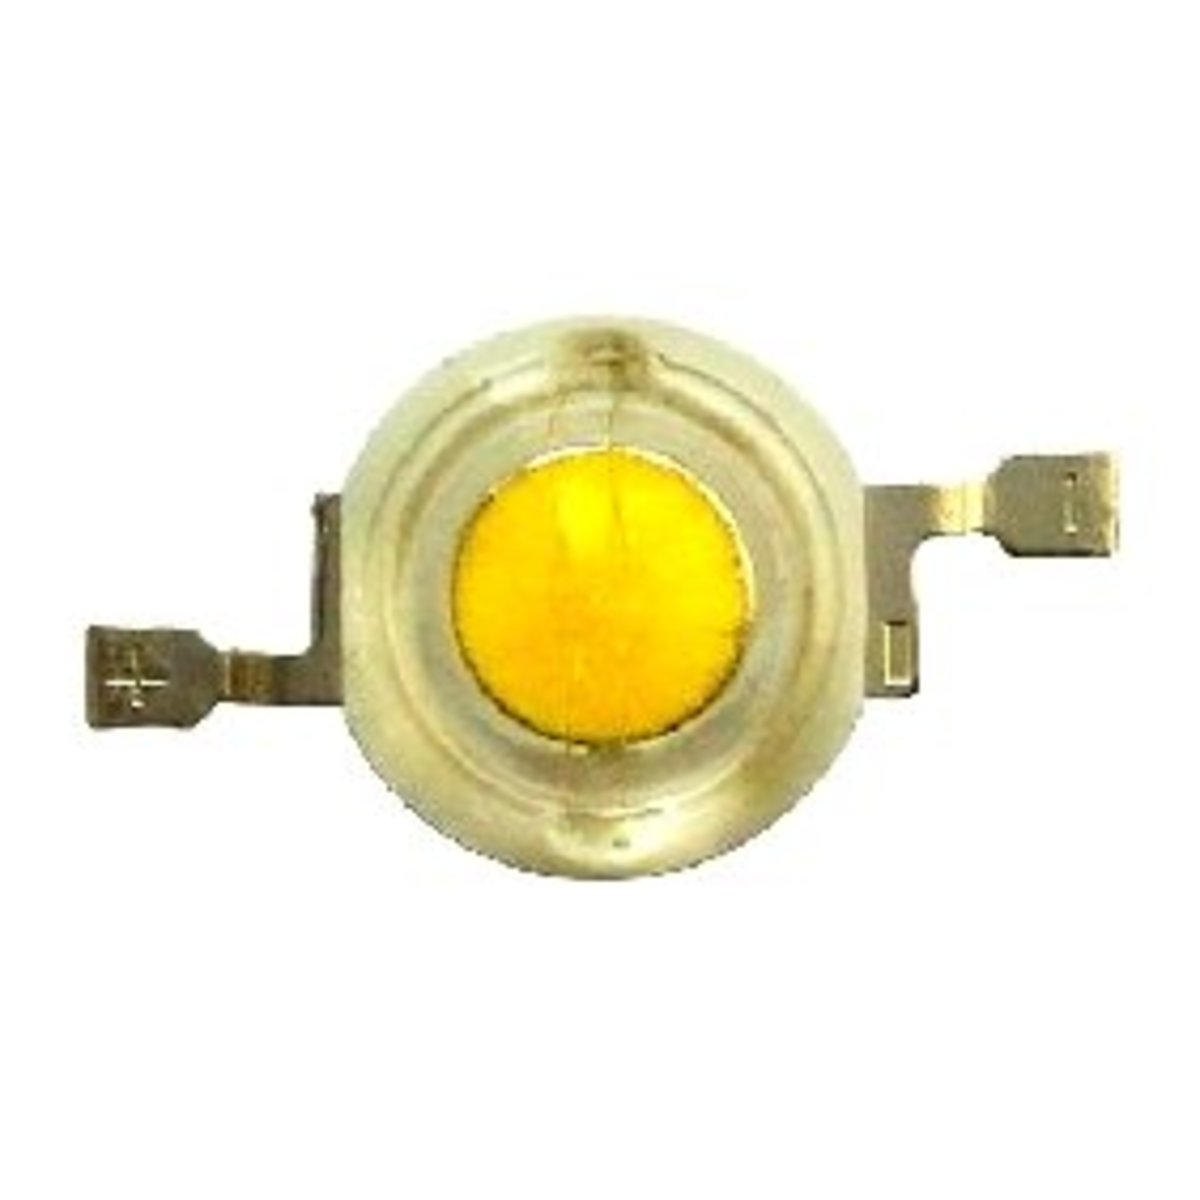 As shown in the figure, a 1 watt white led is a surface mount device having two lateral terminals. The terminals have polarity, it may seen embossed over the terminals itself for easy identification.